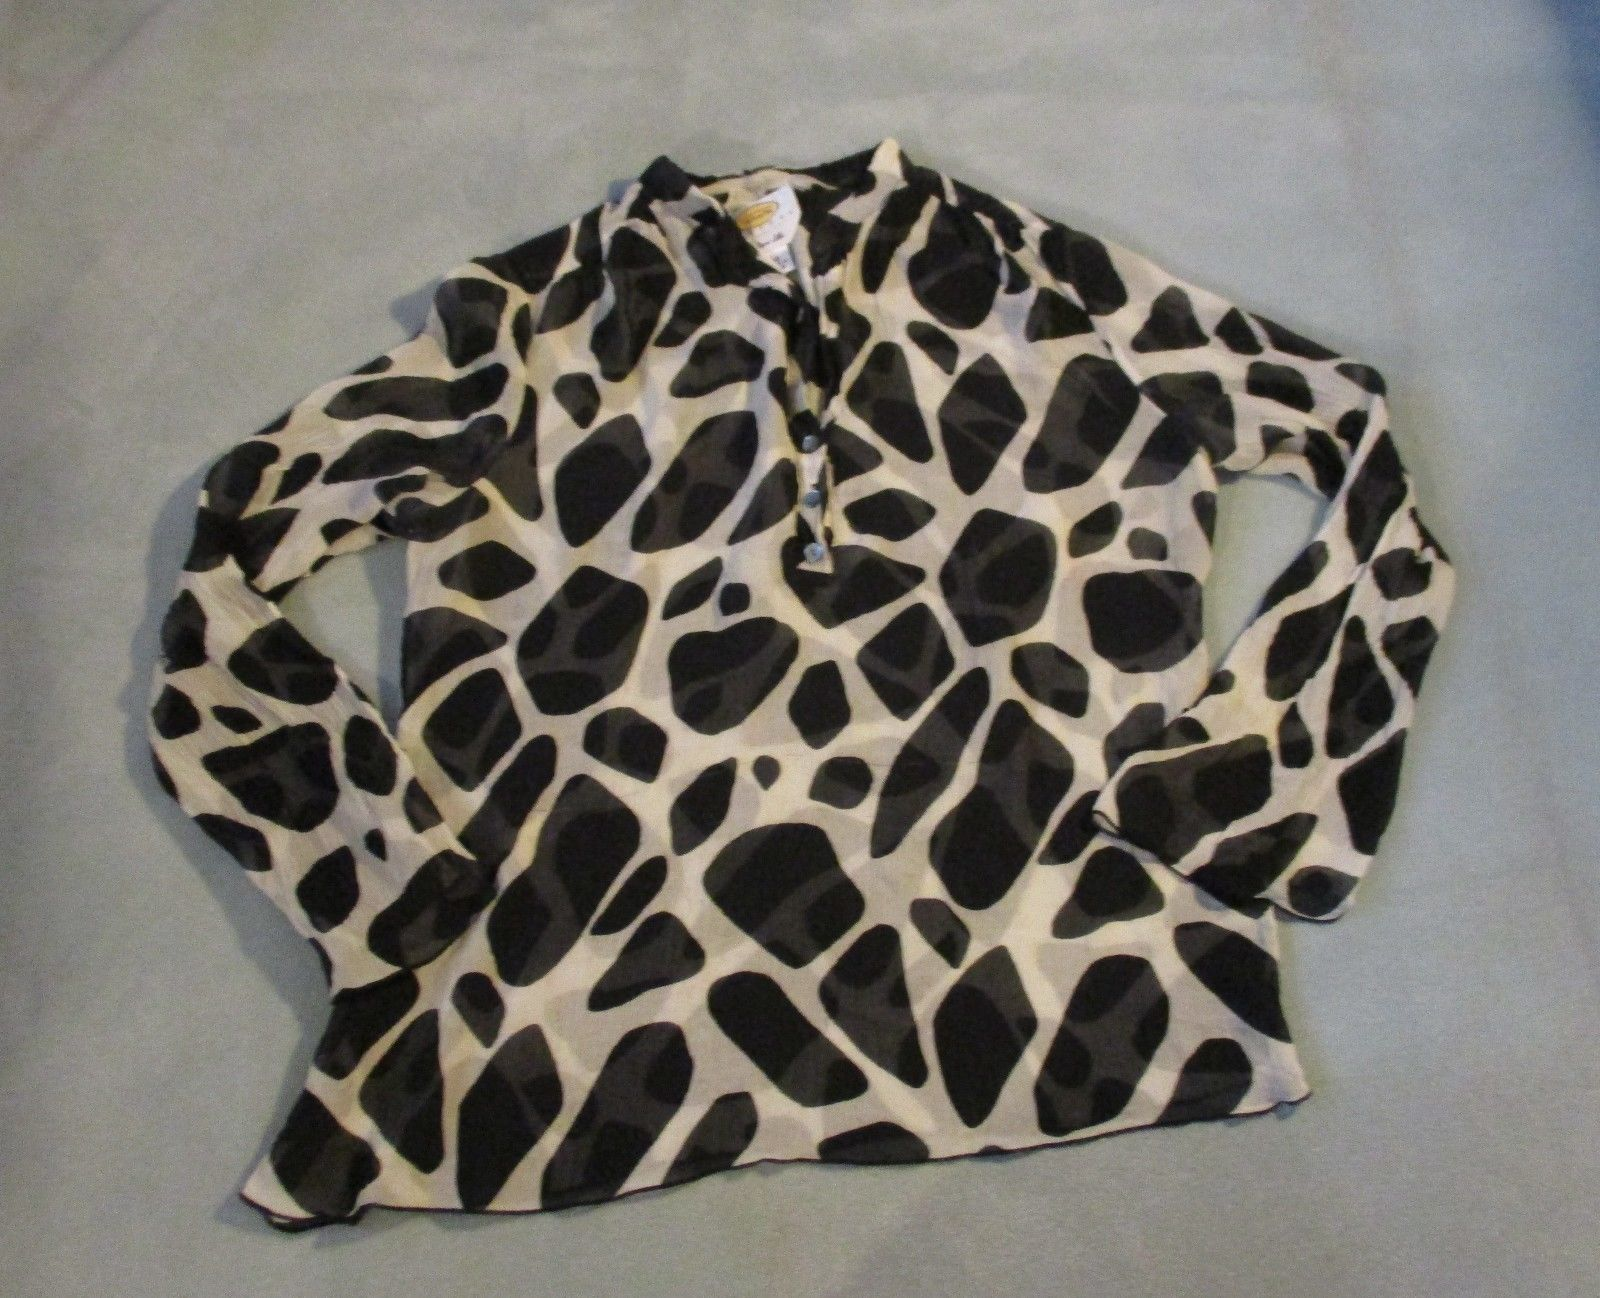 c3a94c7e2a841d Talbots Womens Blouse Petite Size 10 Sheer and 50 similar items. 57